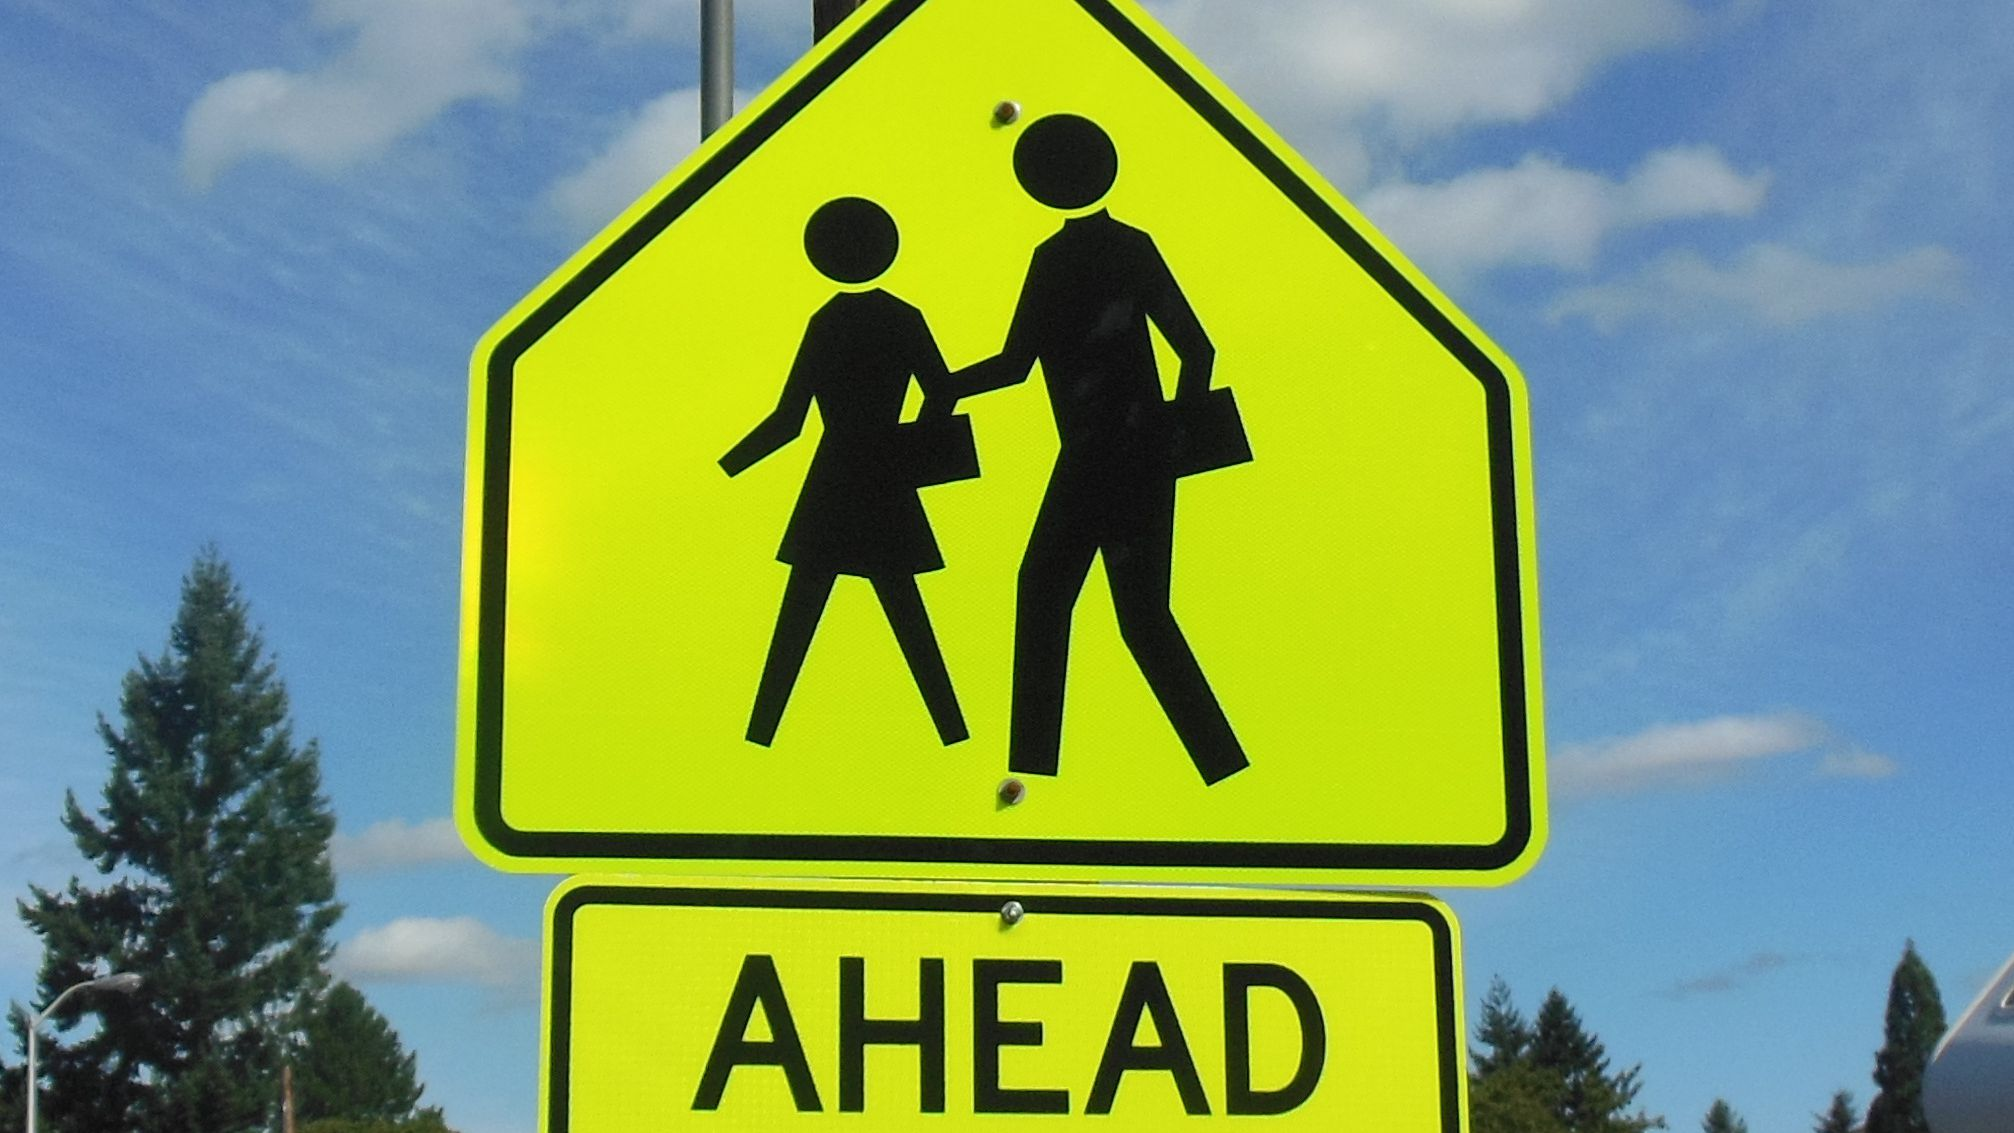 REAL YOUR OWN PERSONALLY CREATED STREET TRAFFIC SIGN